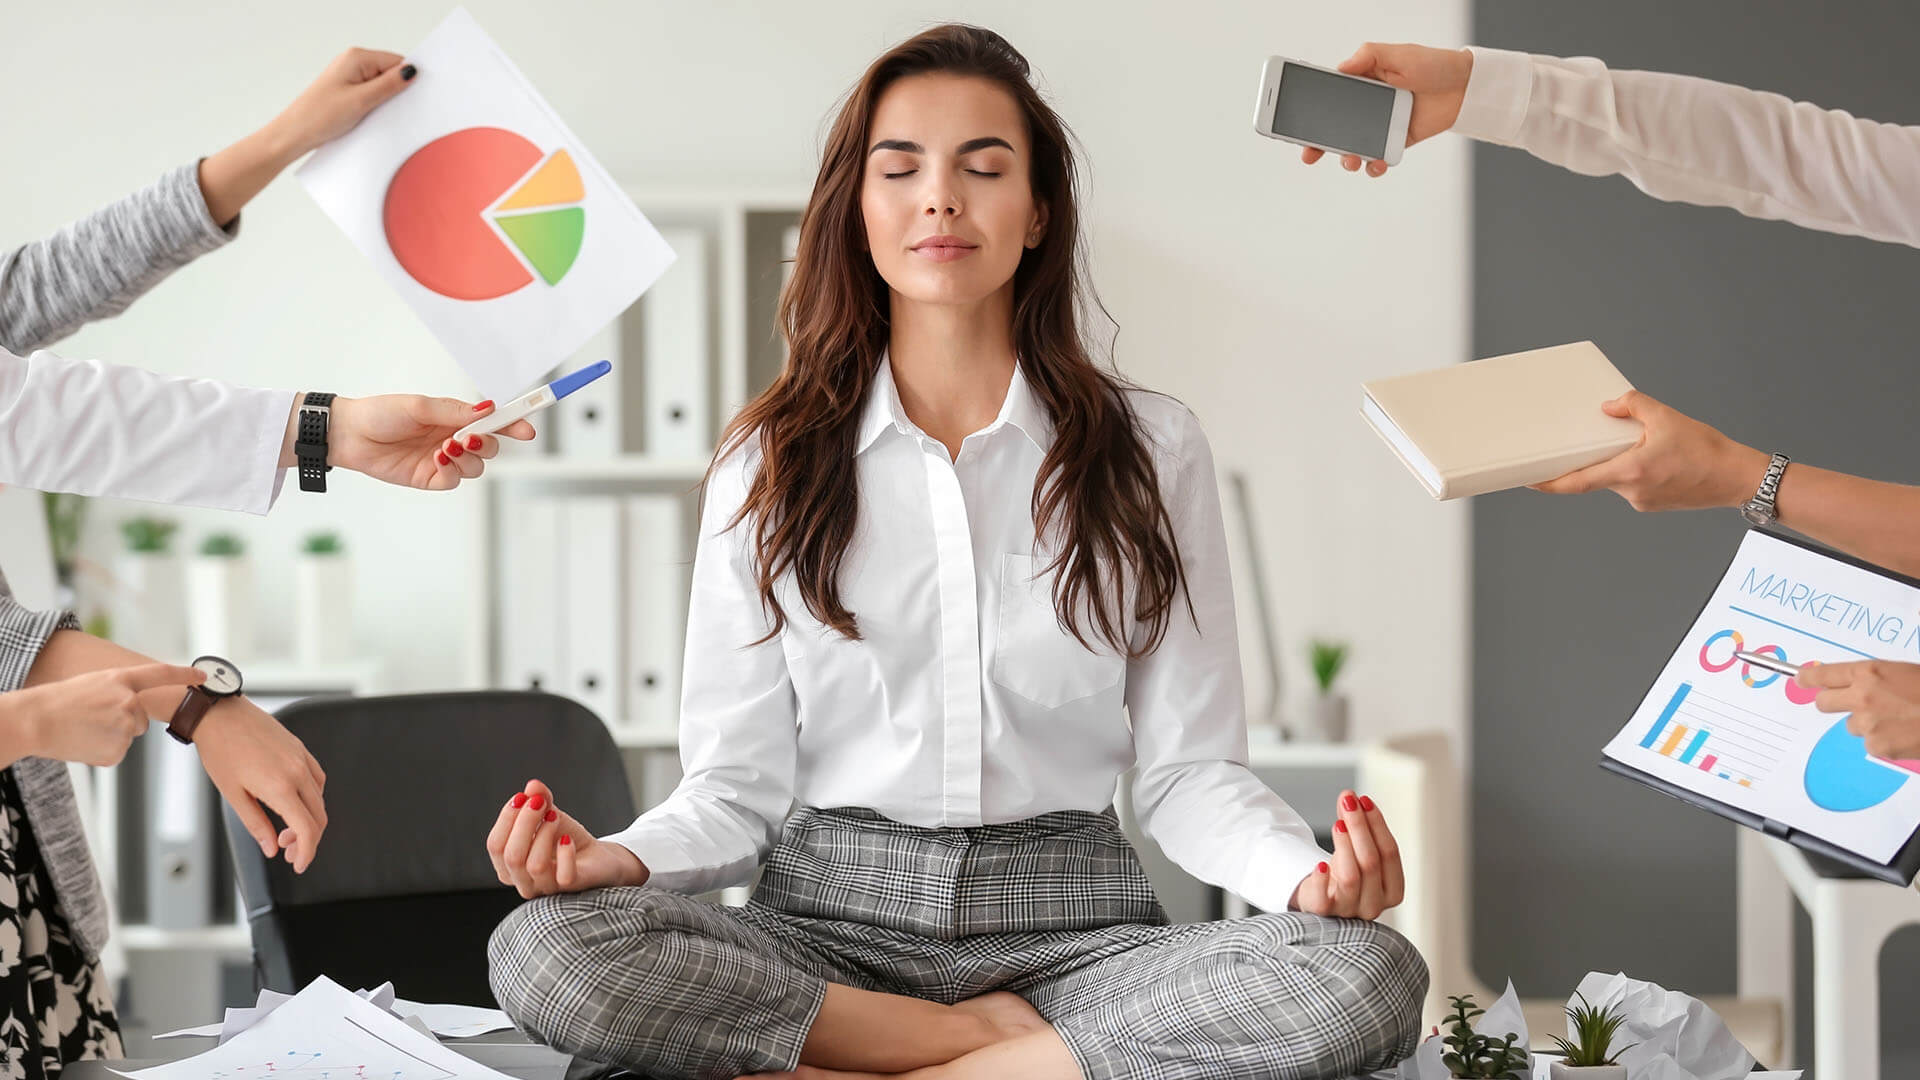 5 Causes of Stress and How to Deal with Them